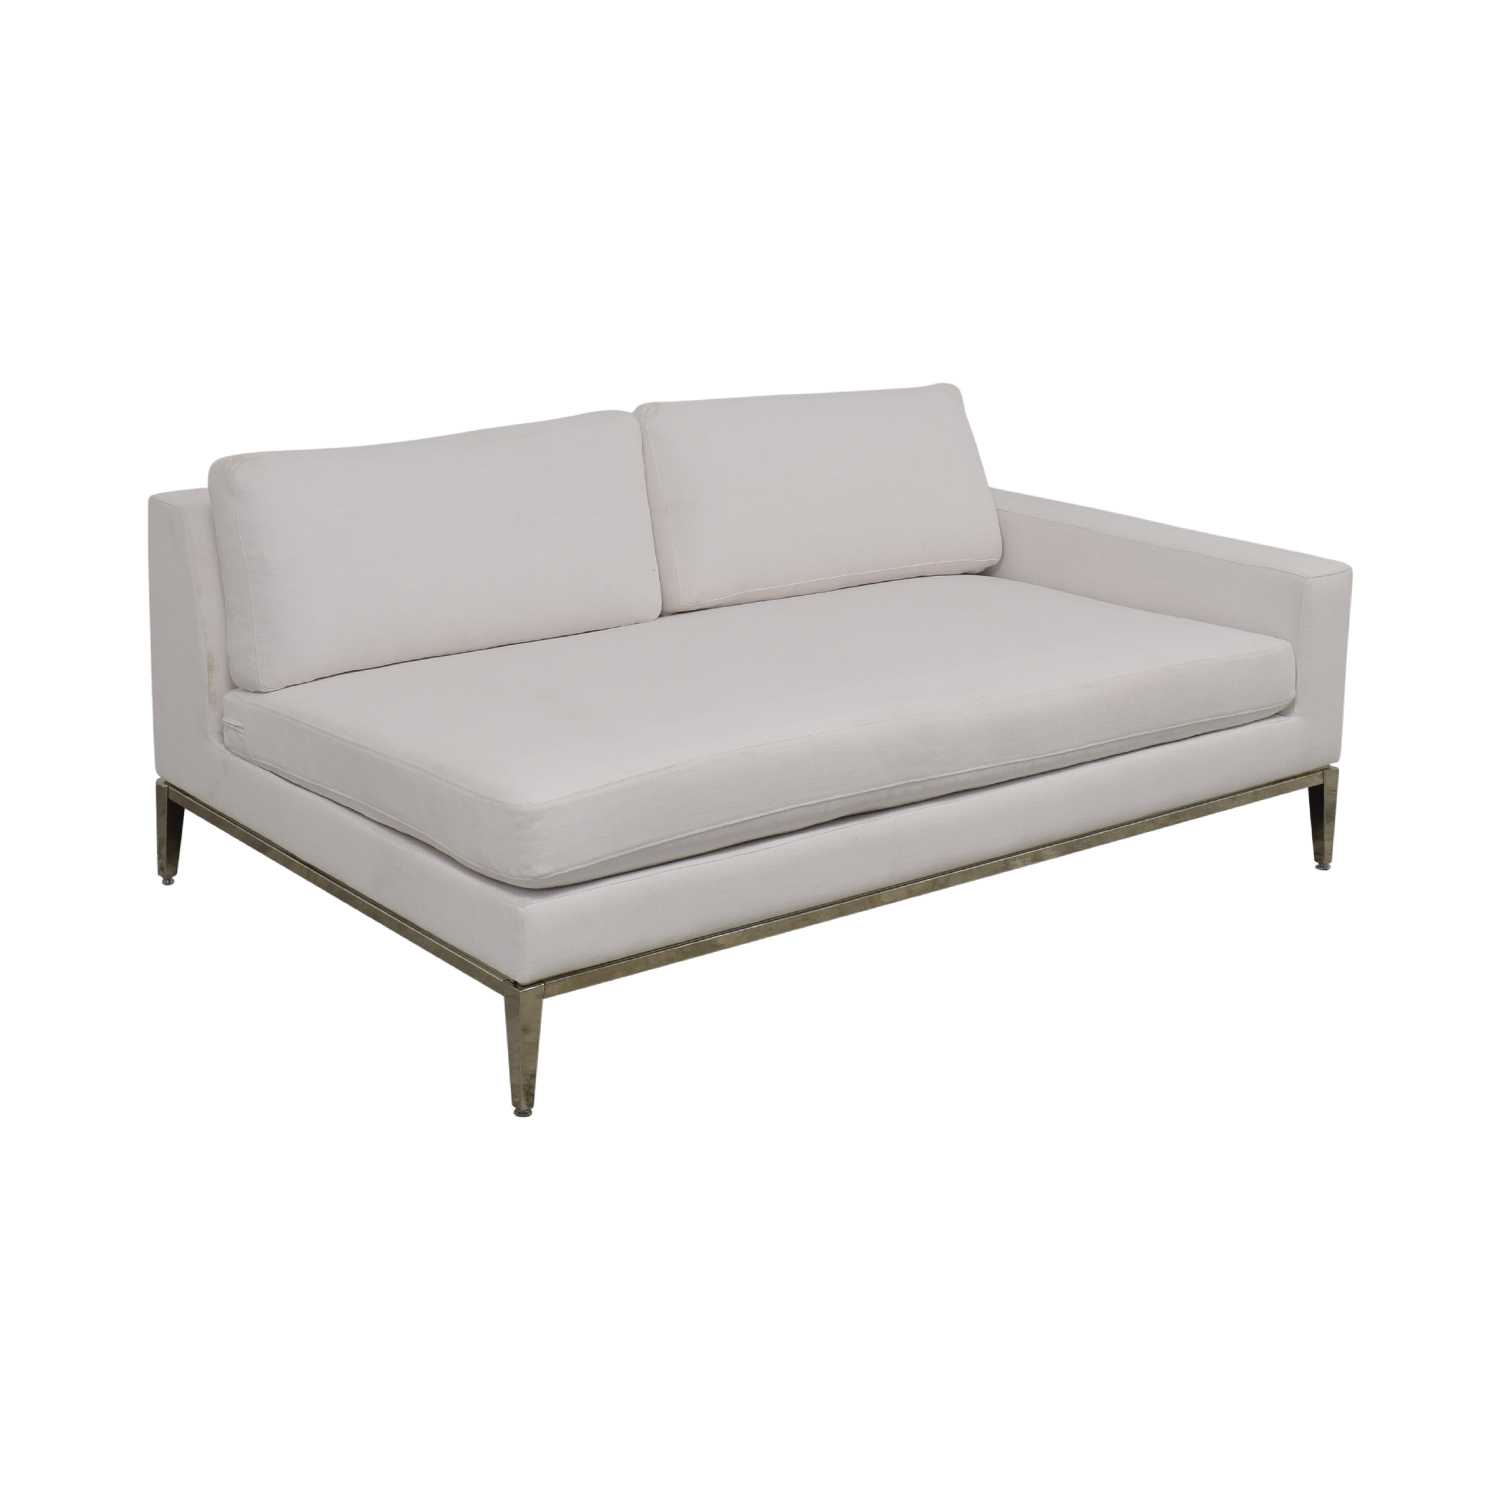 Restoration Hardware Restoration Hardware Midcentury Sofa on sale